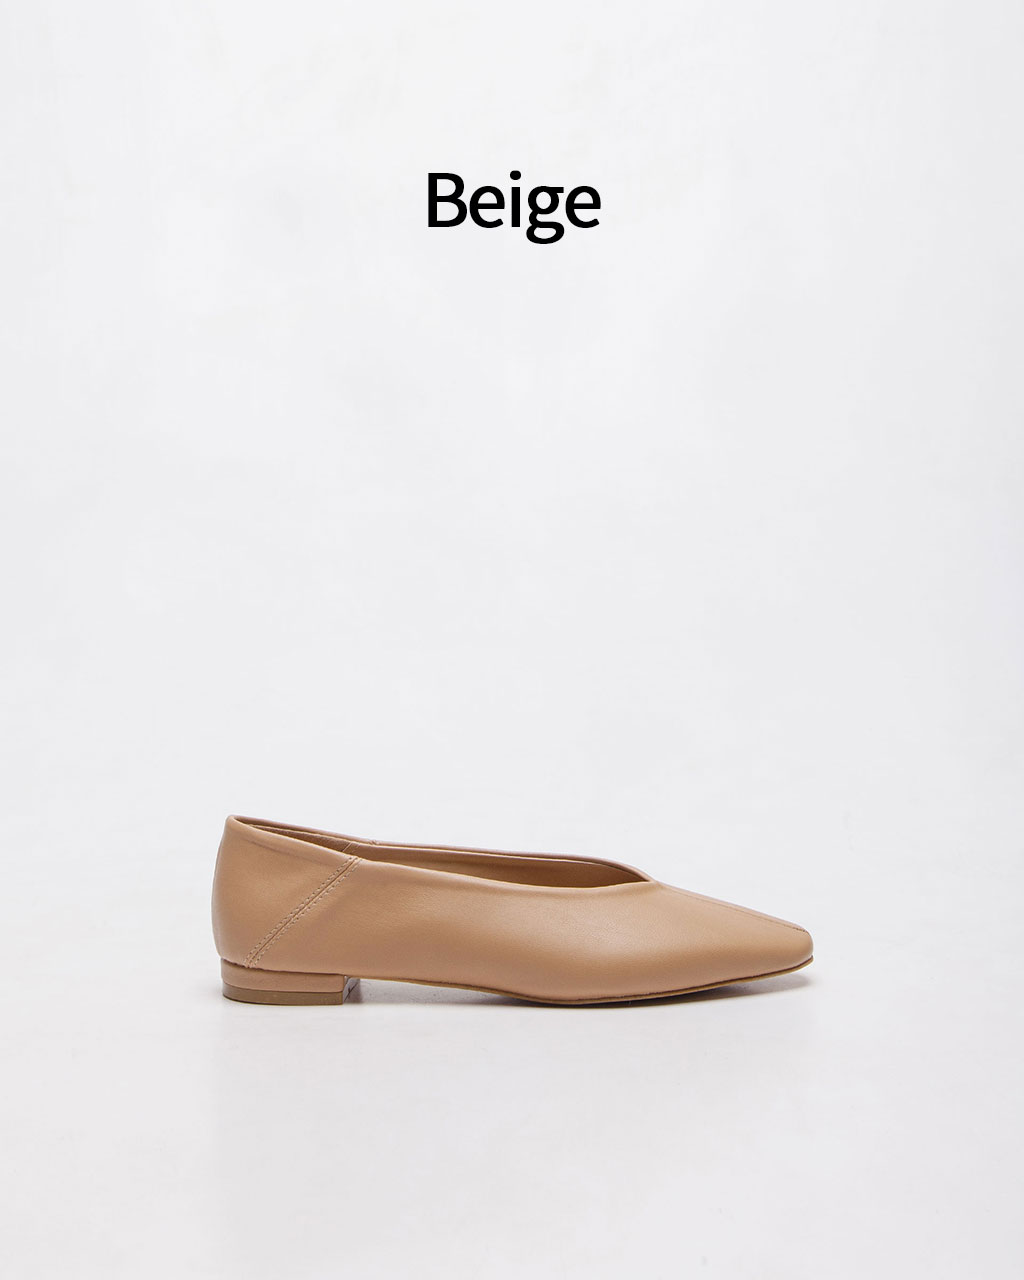 Tagtraume Clever-07 - Beige(베이지)